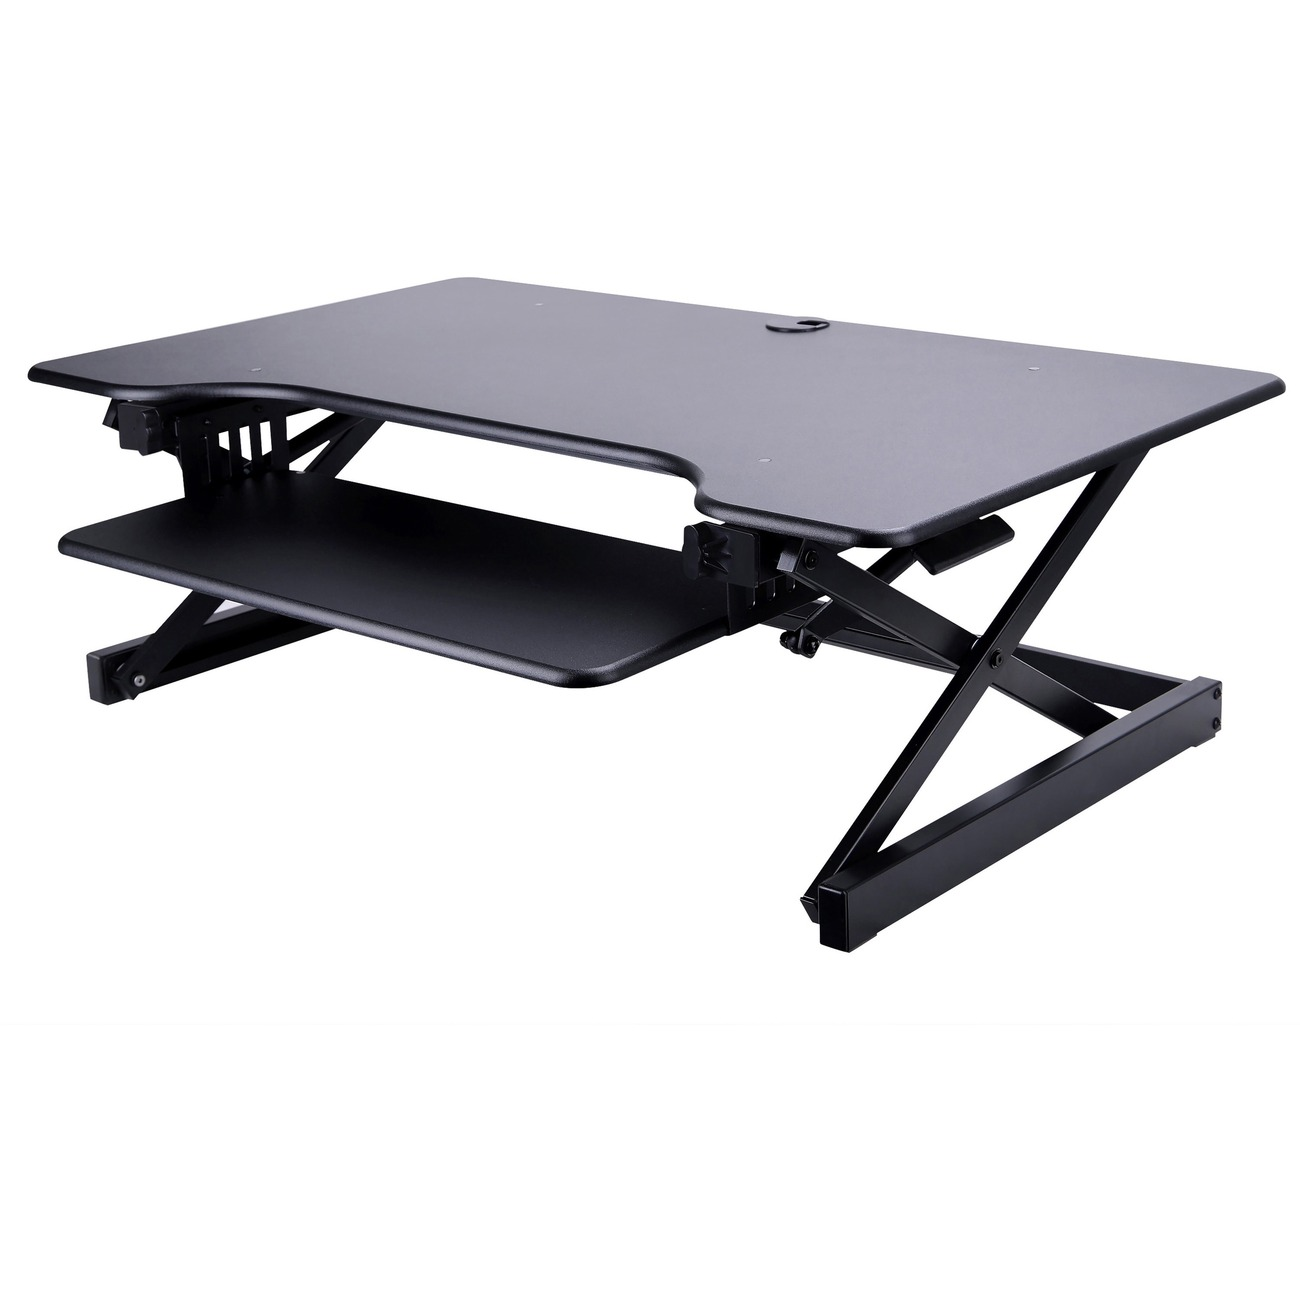 p adjustable desk standing ergonomic htm sit desks let a focal height stand upright sphere